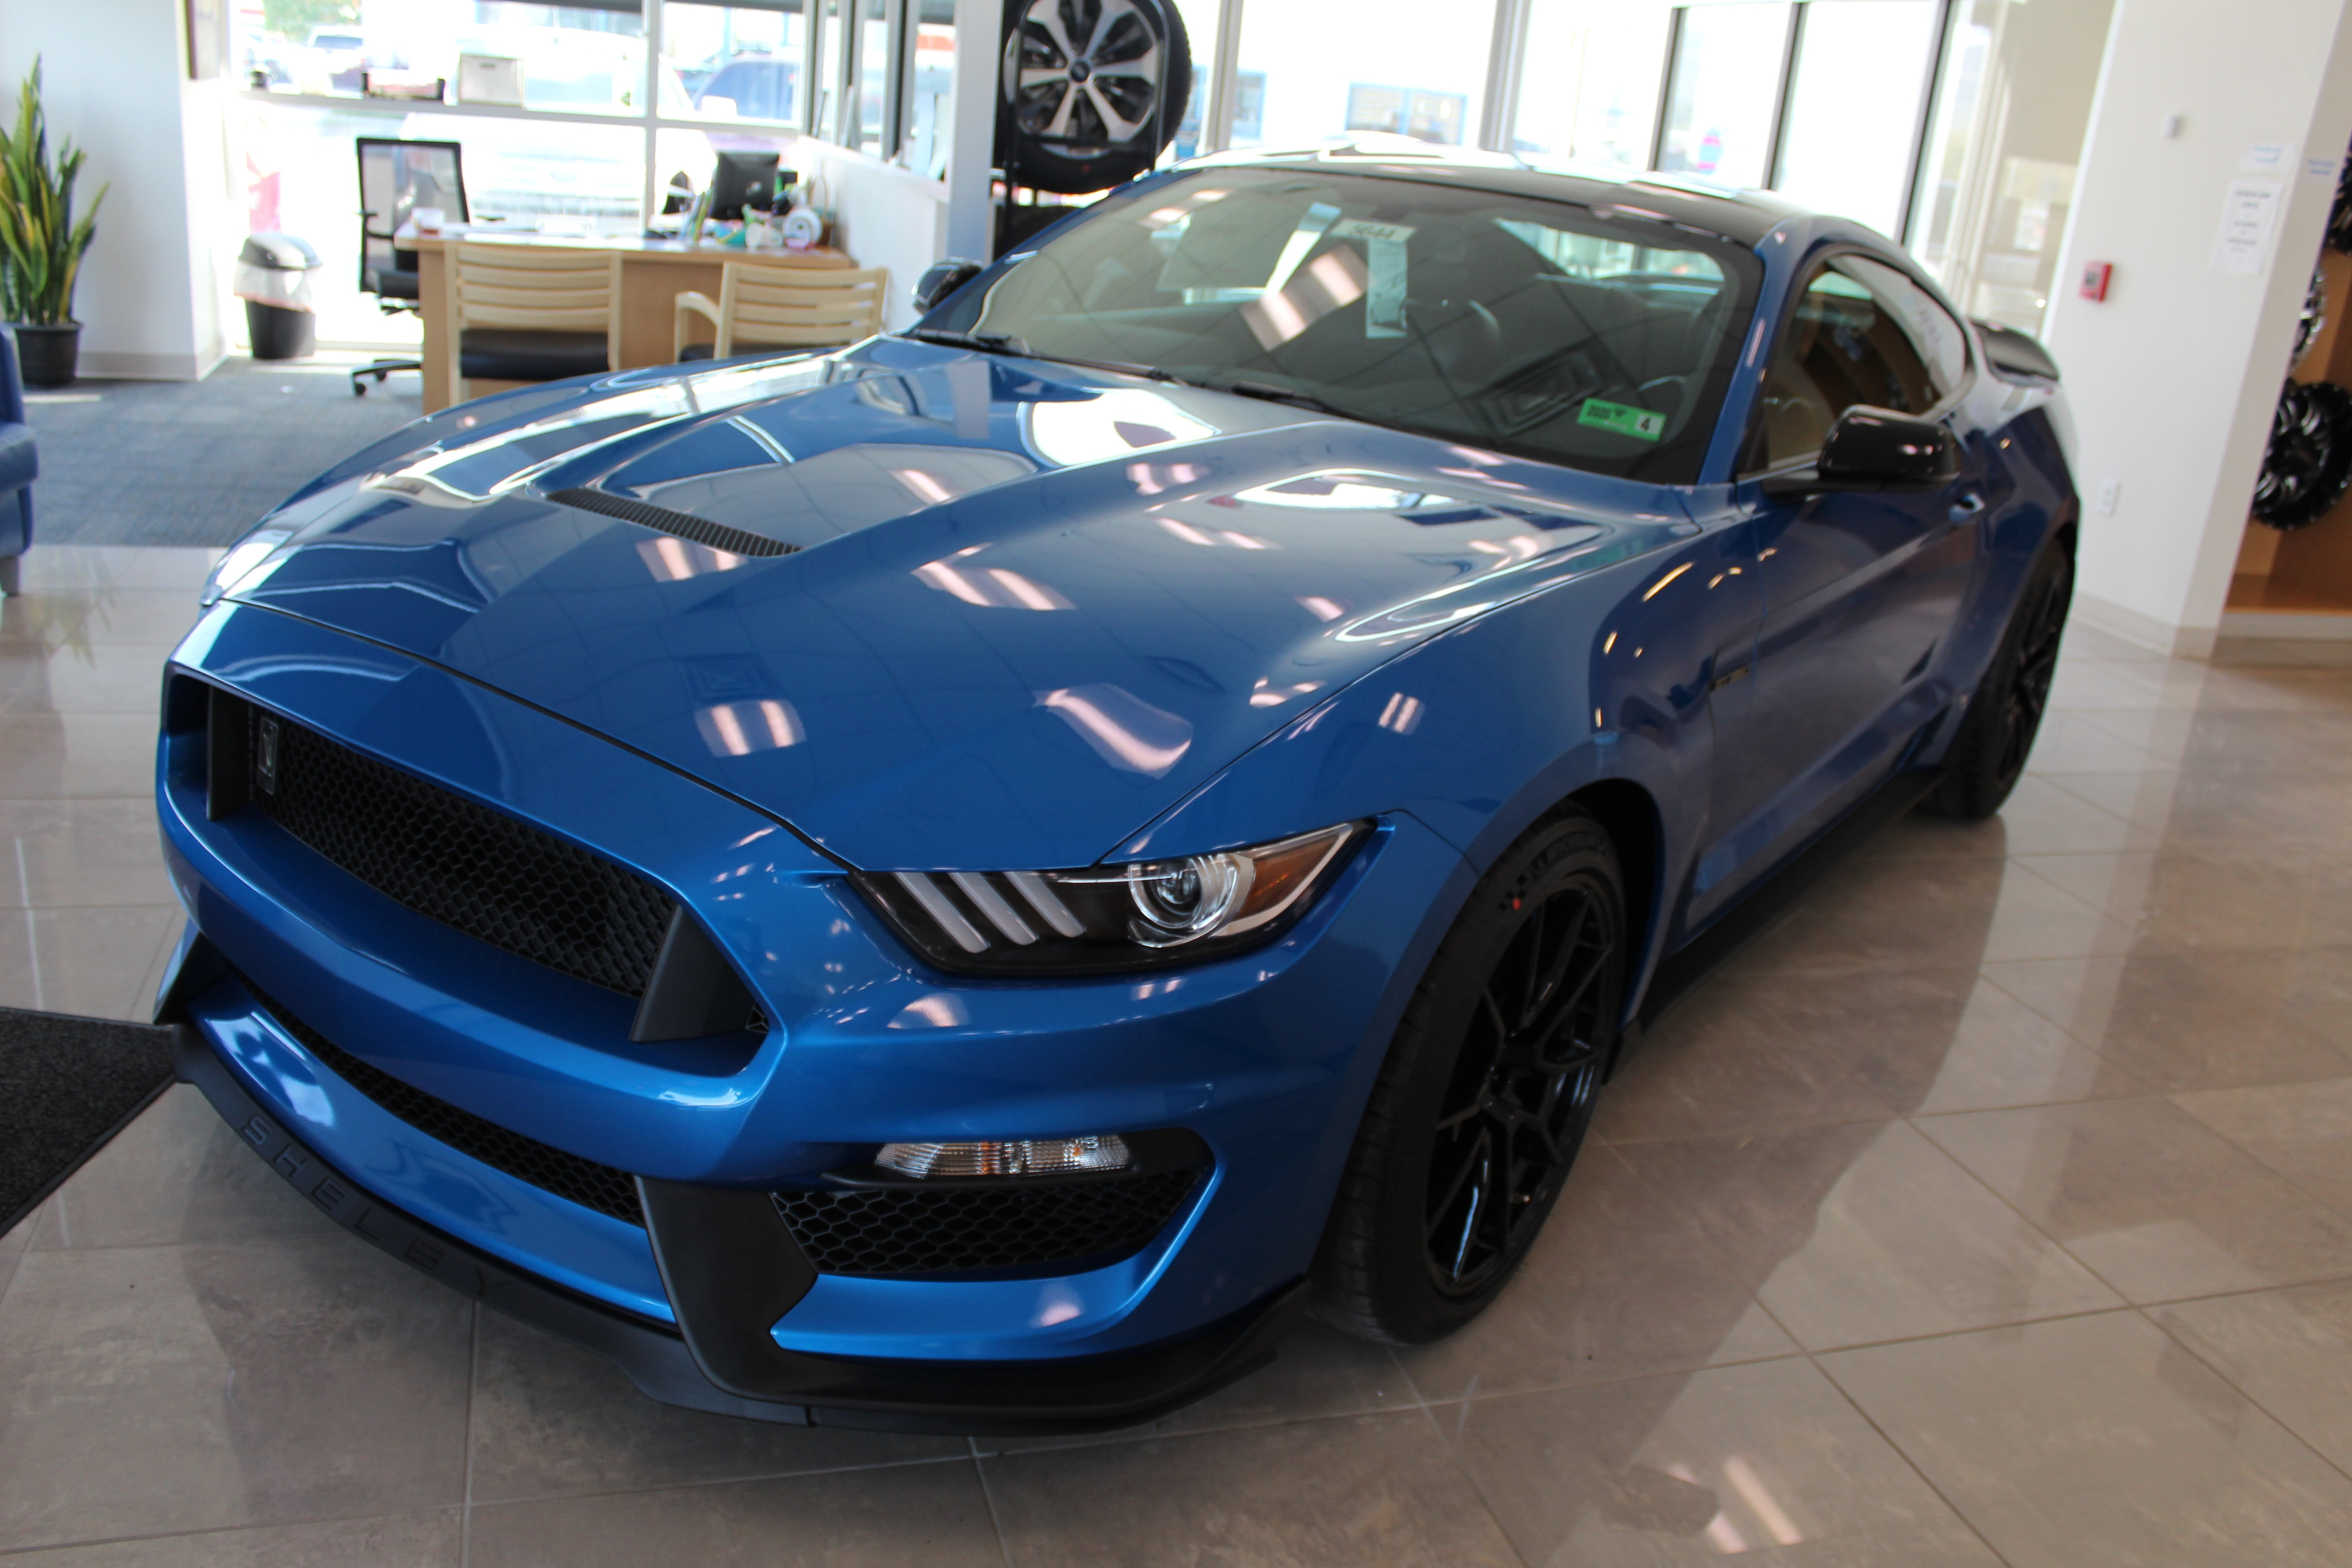 2019 Ford Mustang 350 Shelby Coupe